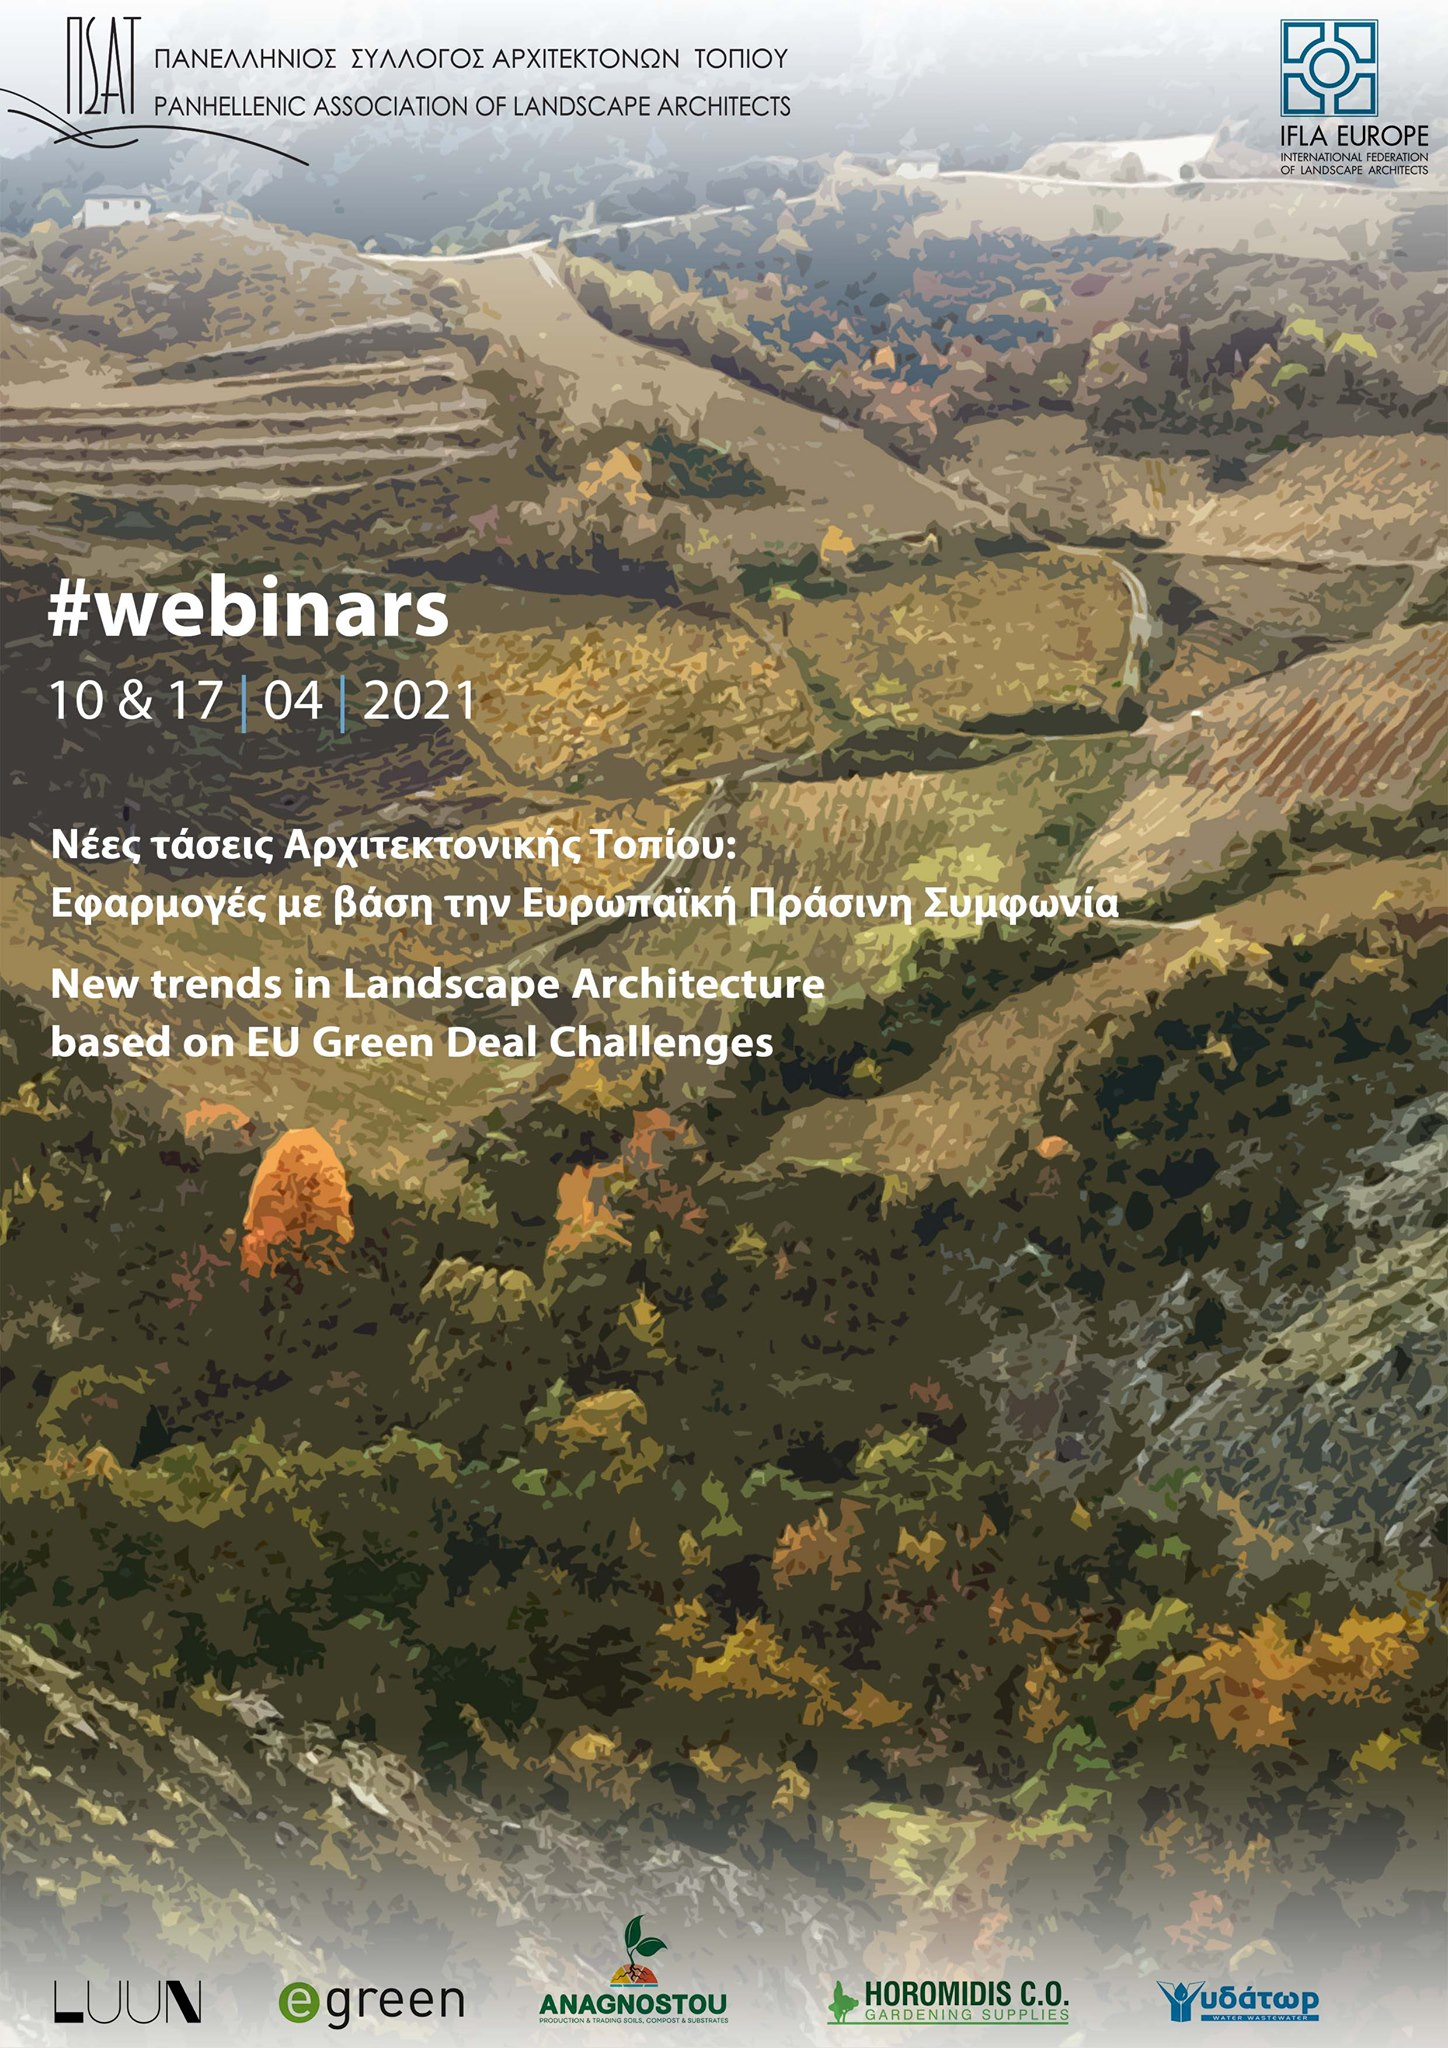 PHALA Greece #Webinars! New trends in Landscape Architecture based on the EU Green Deal Challenges